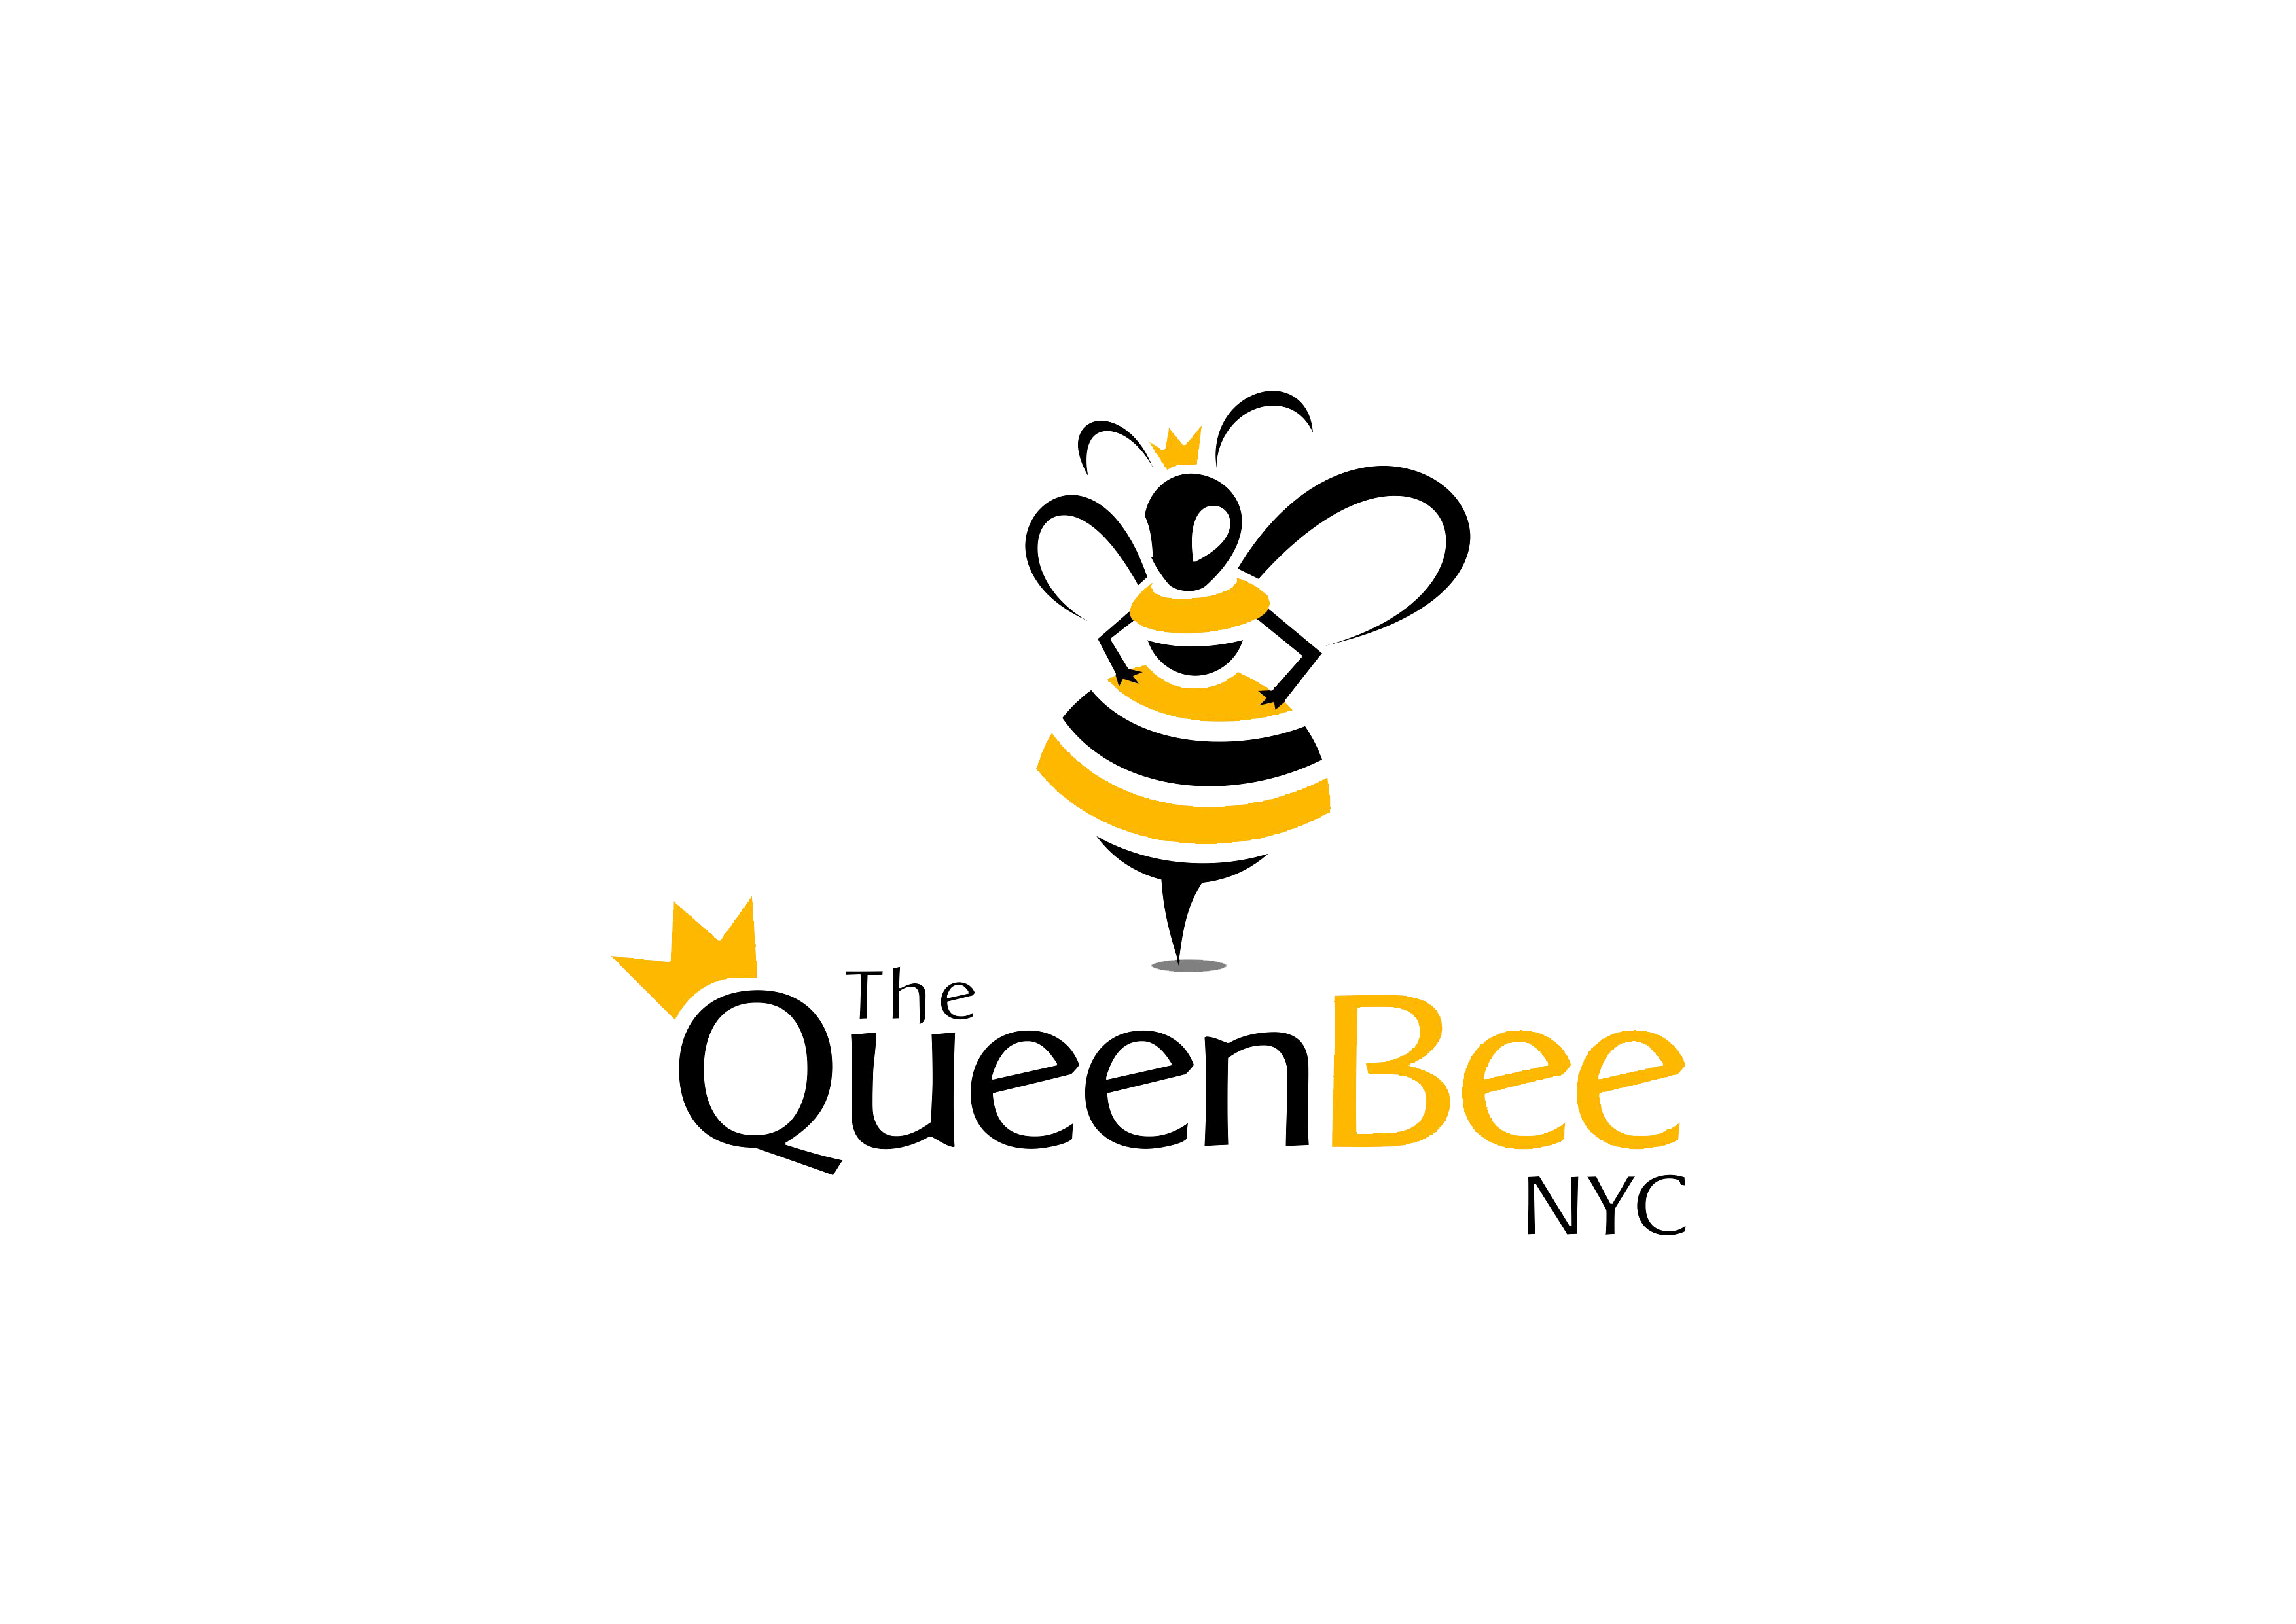 Quotes about bee qeenbee. Bees transparent queen image library